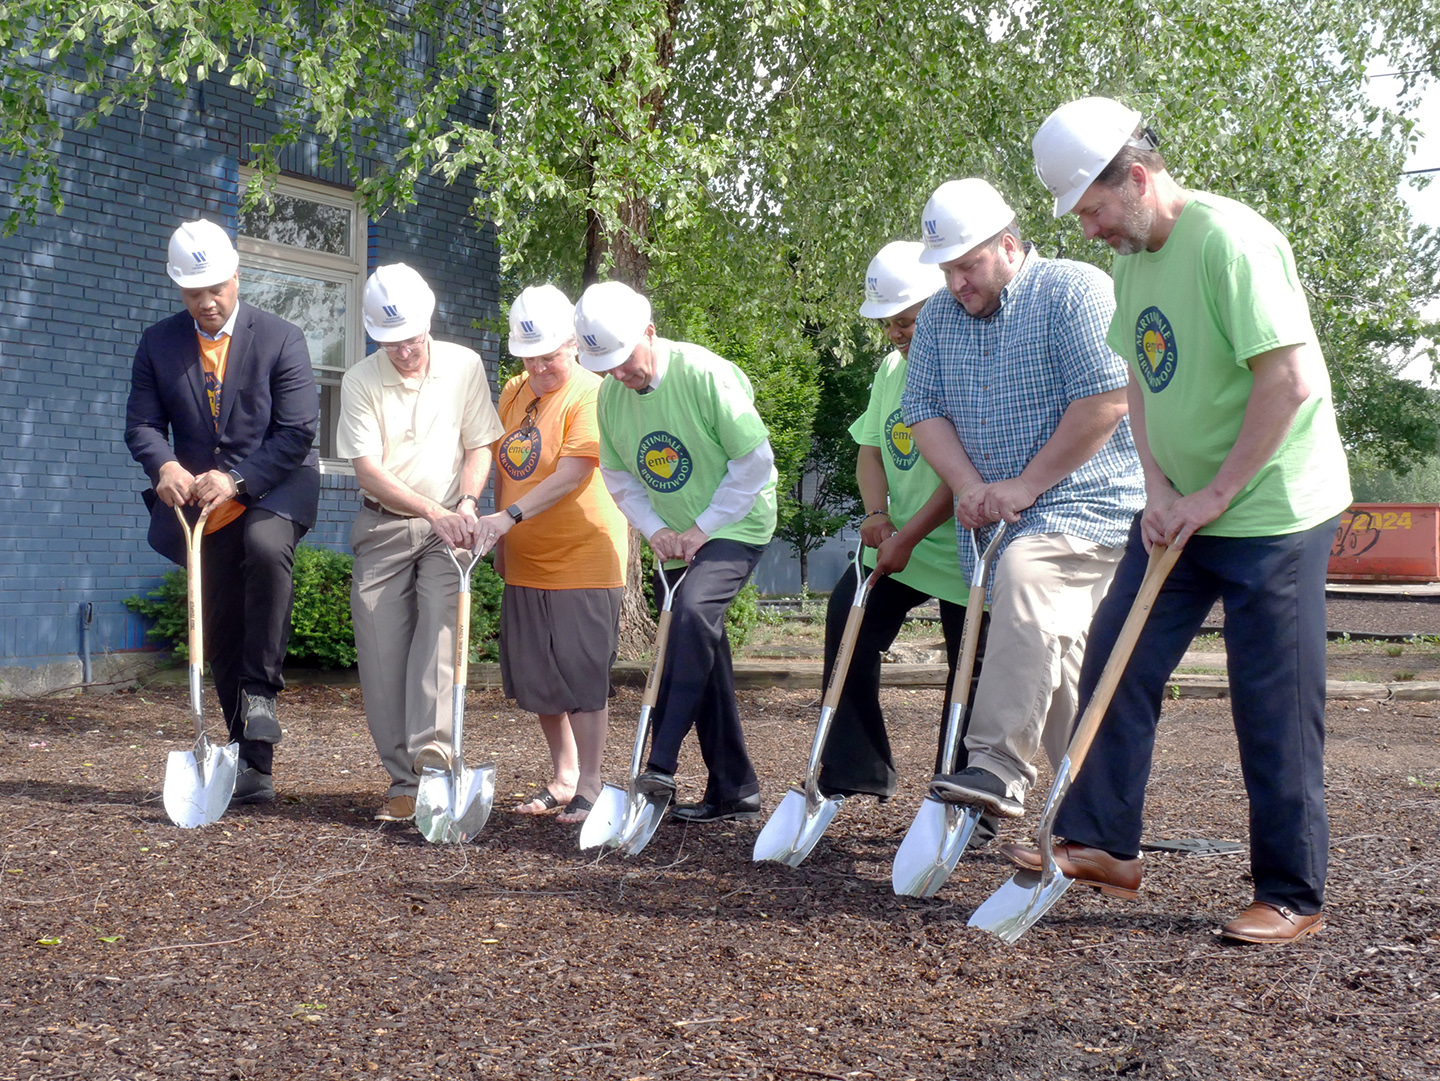 Ground is broken for the renovation of our Leadership & Legacy campus